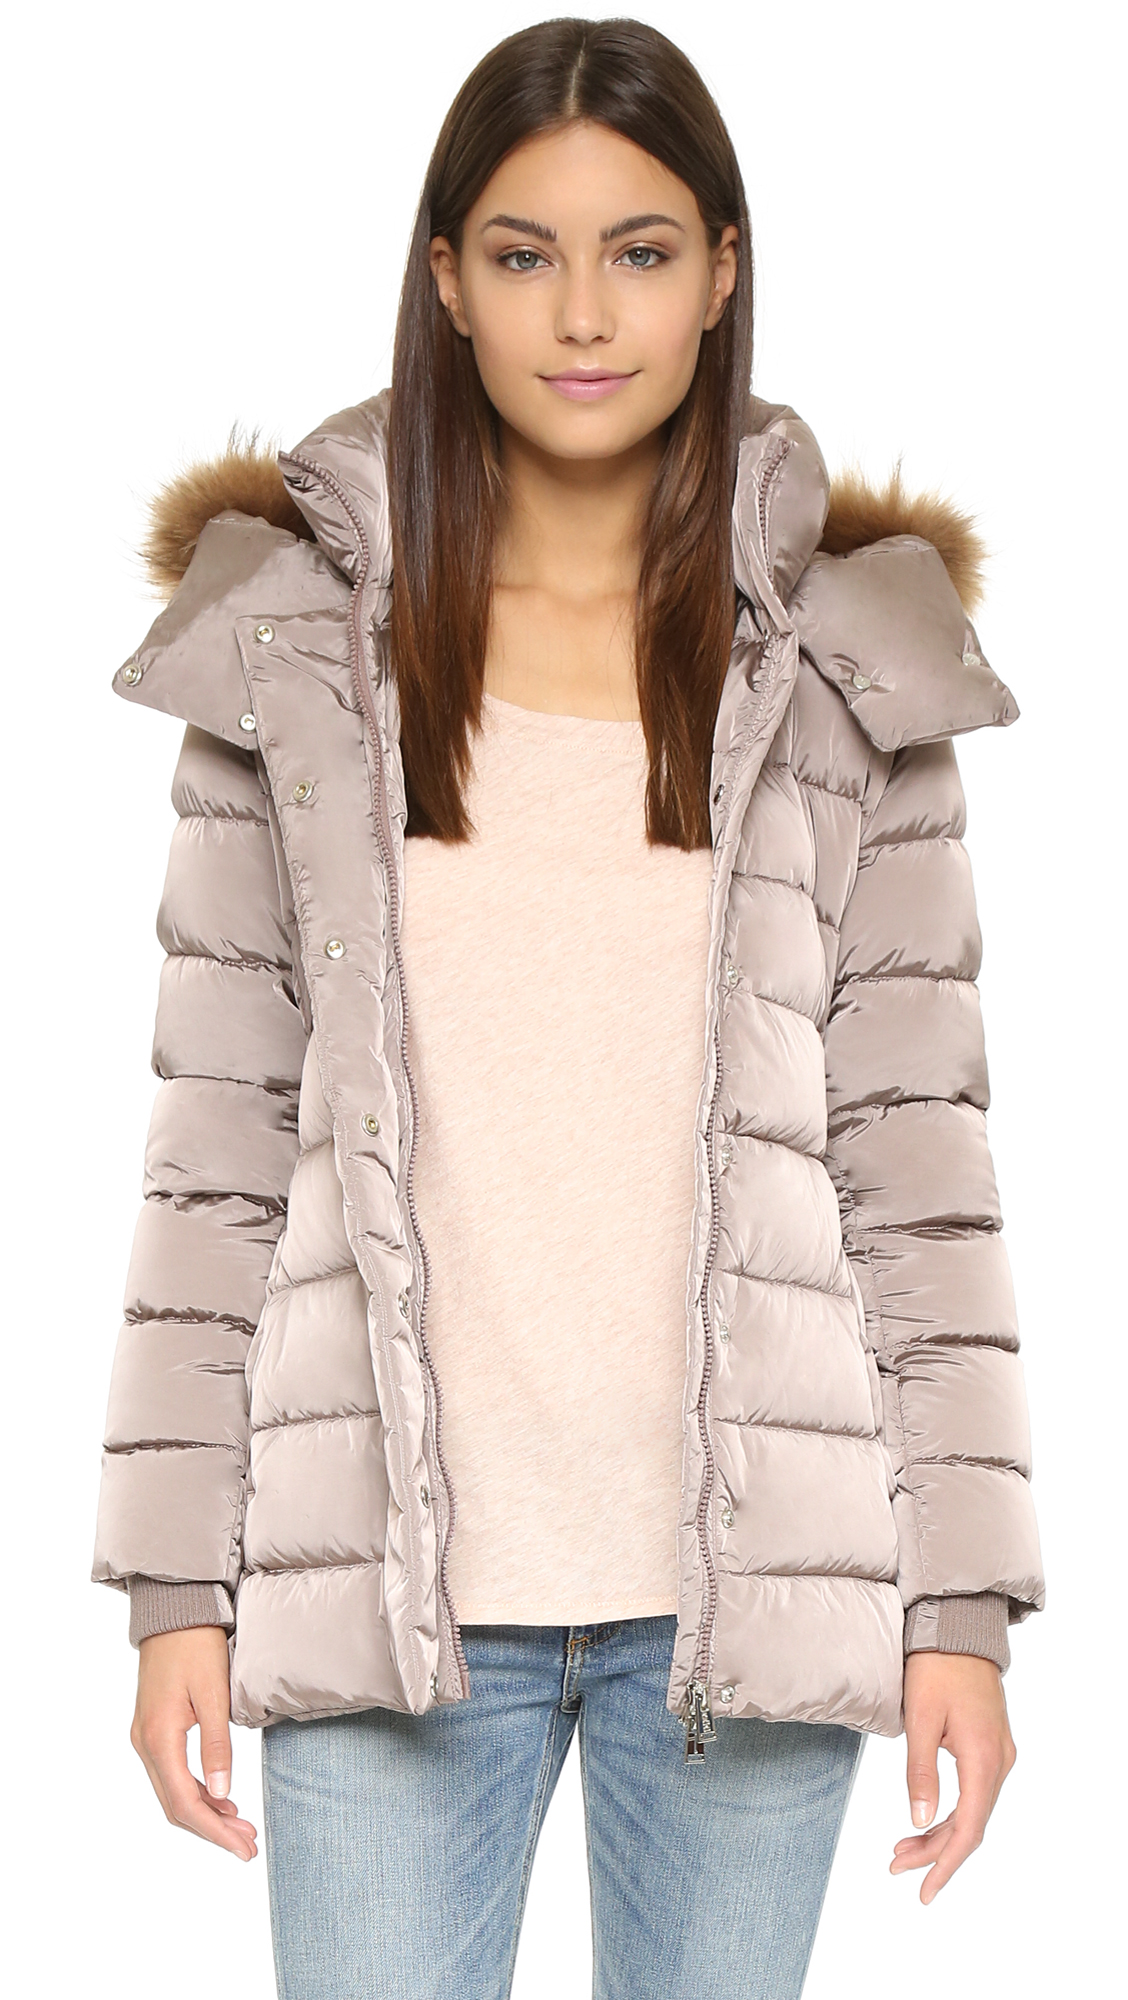 e9b4ac570a10 Add Down Down Jacket with Fur Hood